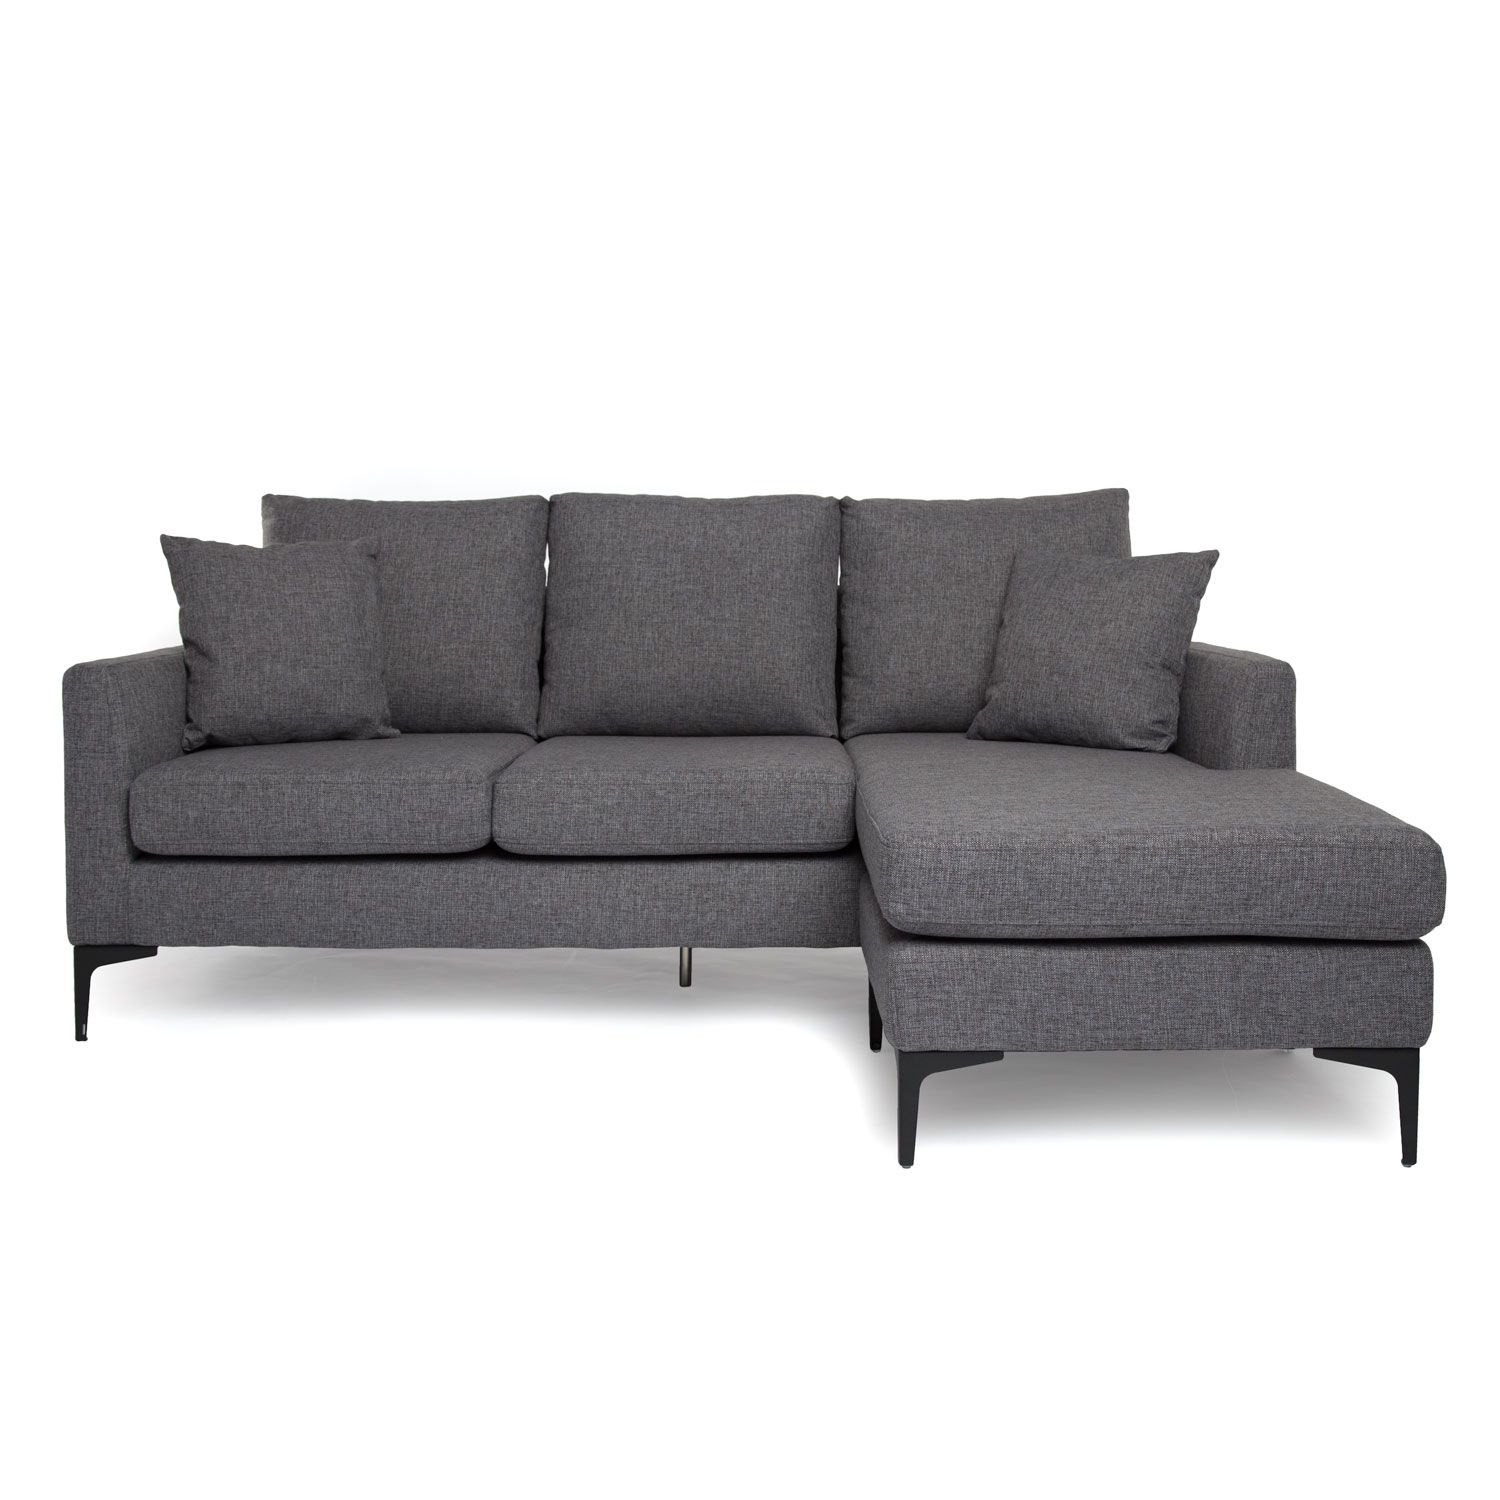 Condo Couches Piccolo Reversible Sectional Grey Fabric Modern